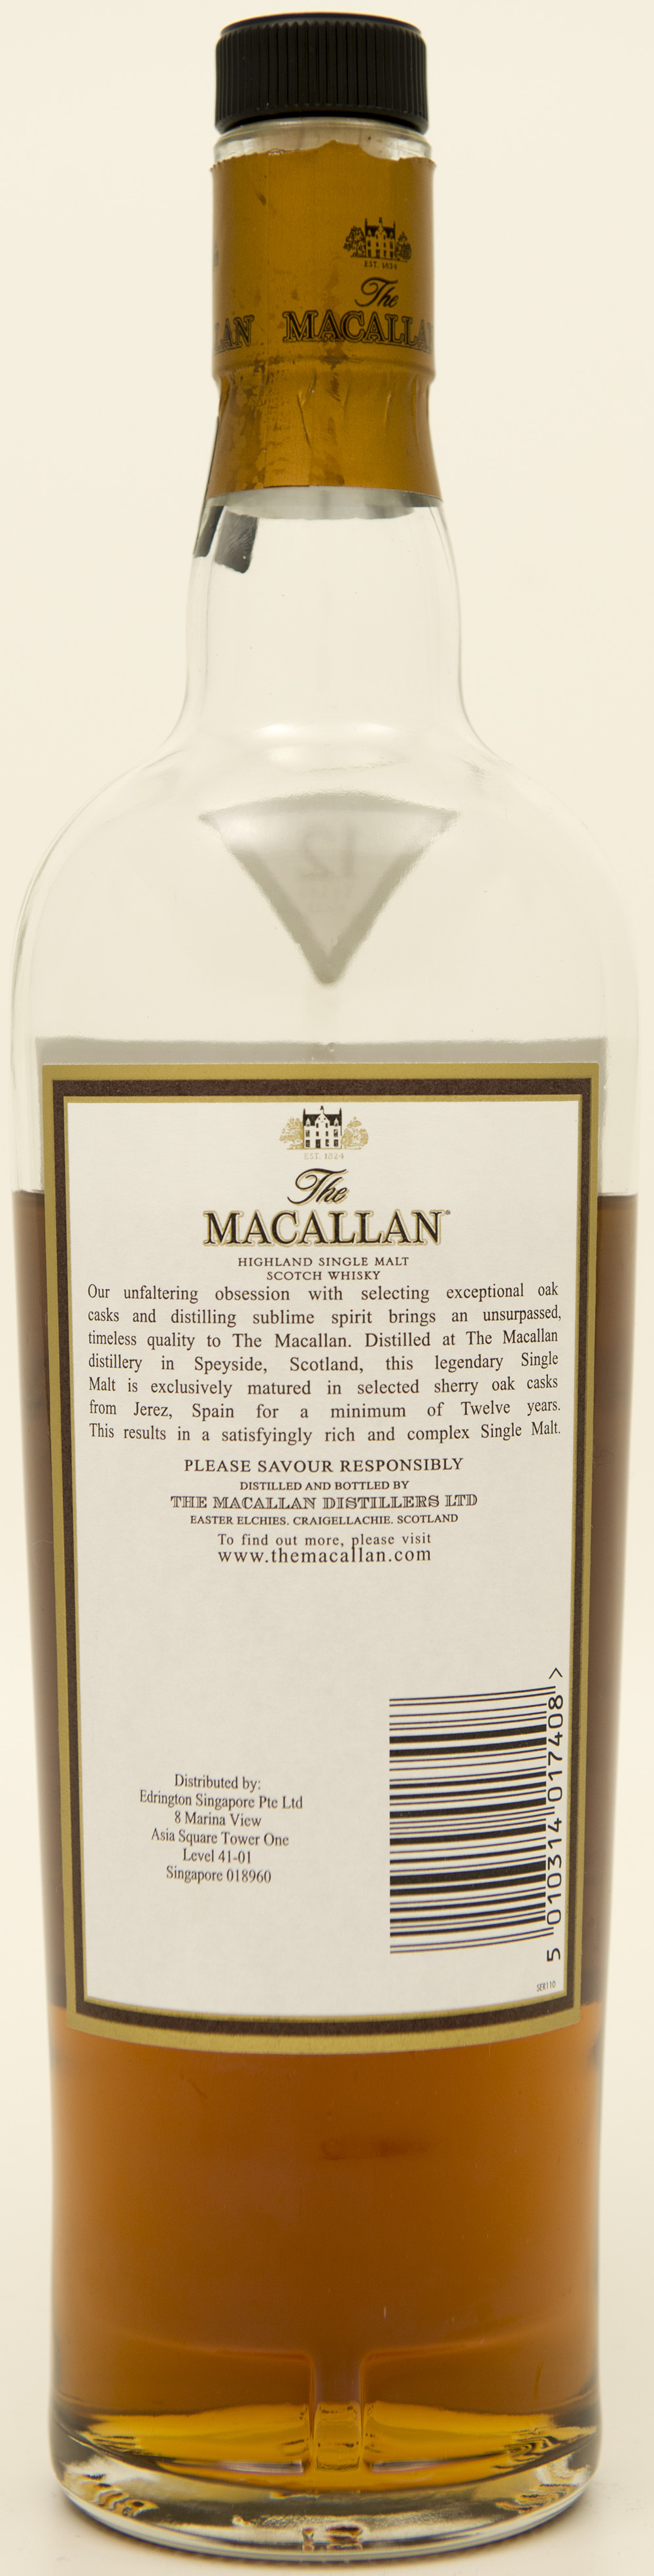 Billede: DSC_3658 - The MacAllan 12 - bottle back.jpg